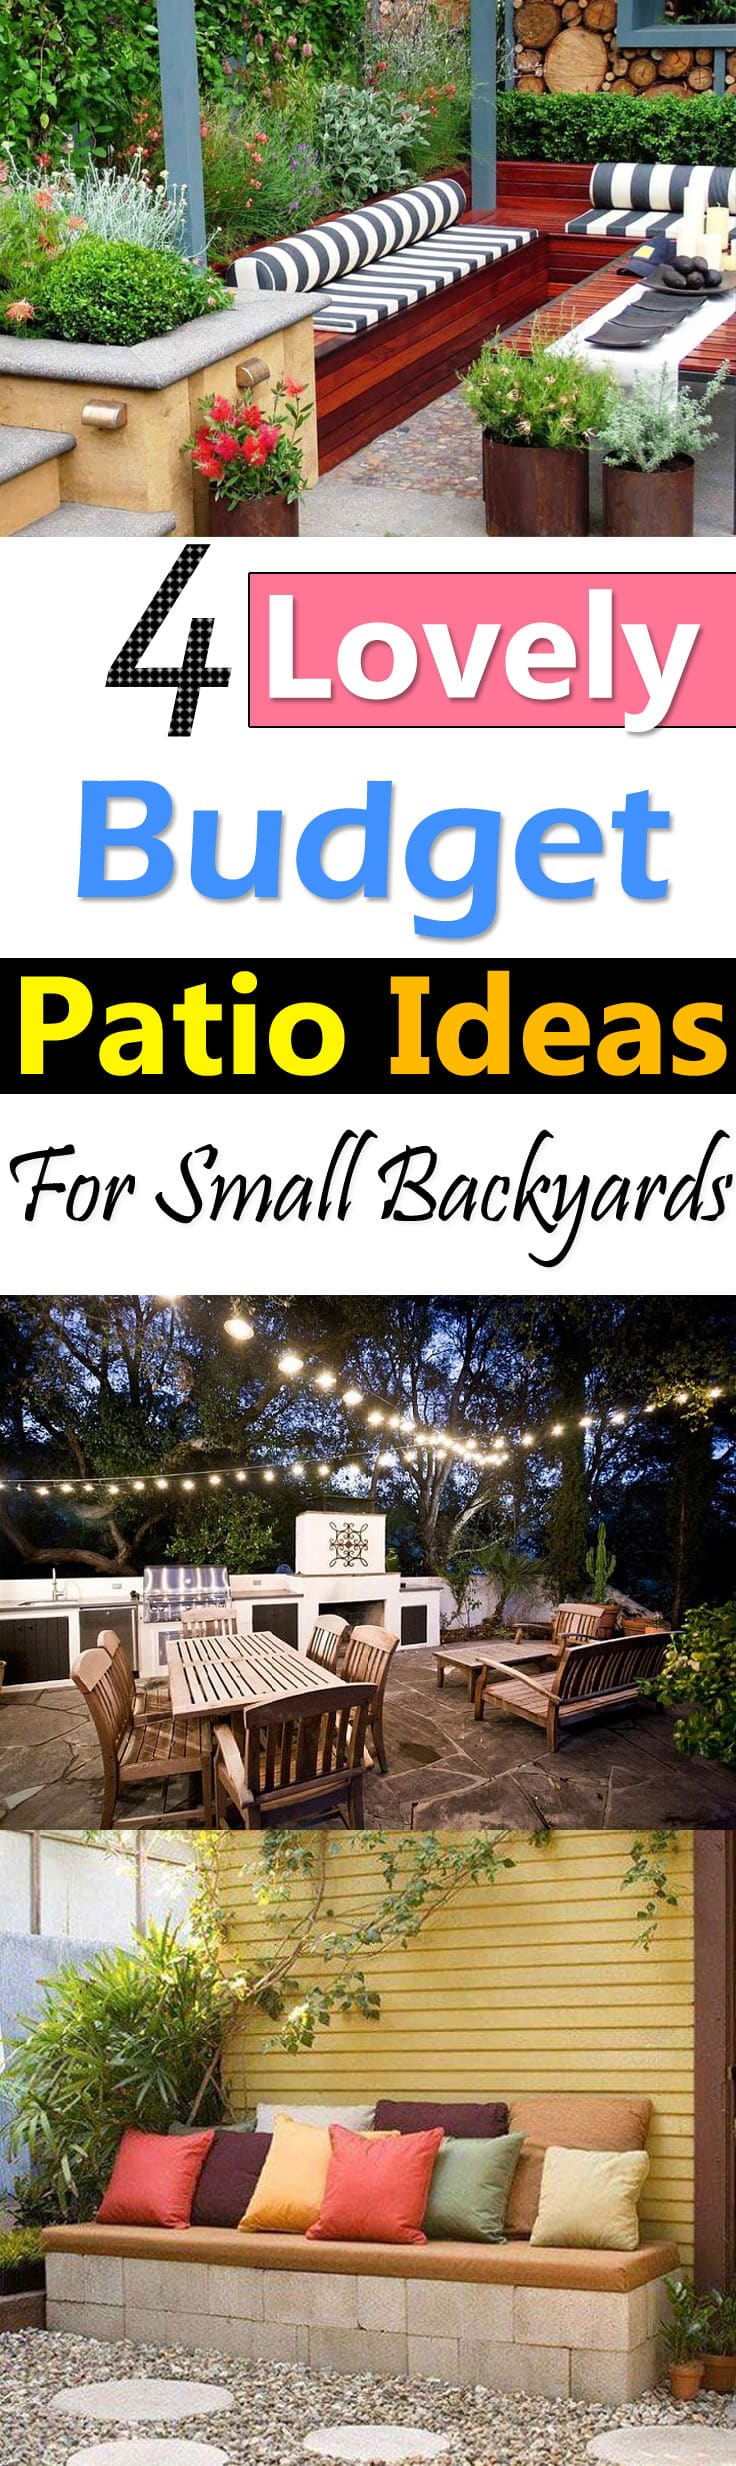 With these lovely patio ideas you can create a lovely Patio Area at cheap  cost. - 4 Lovely Budget Patio Ideas For Small Backyards Balcony Garden Web